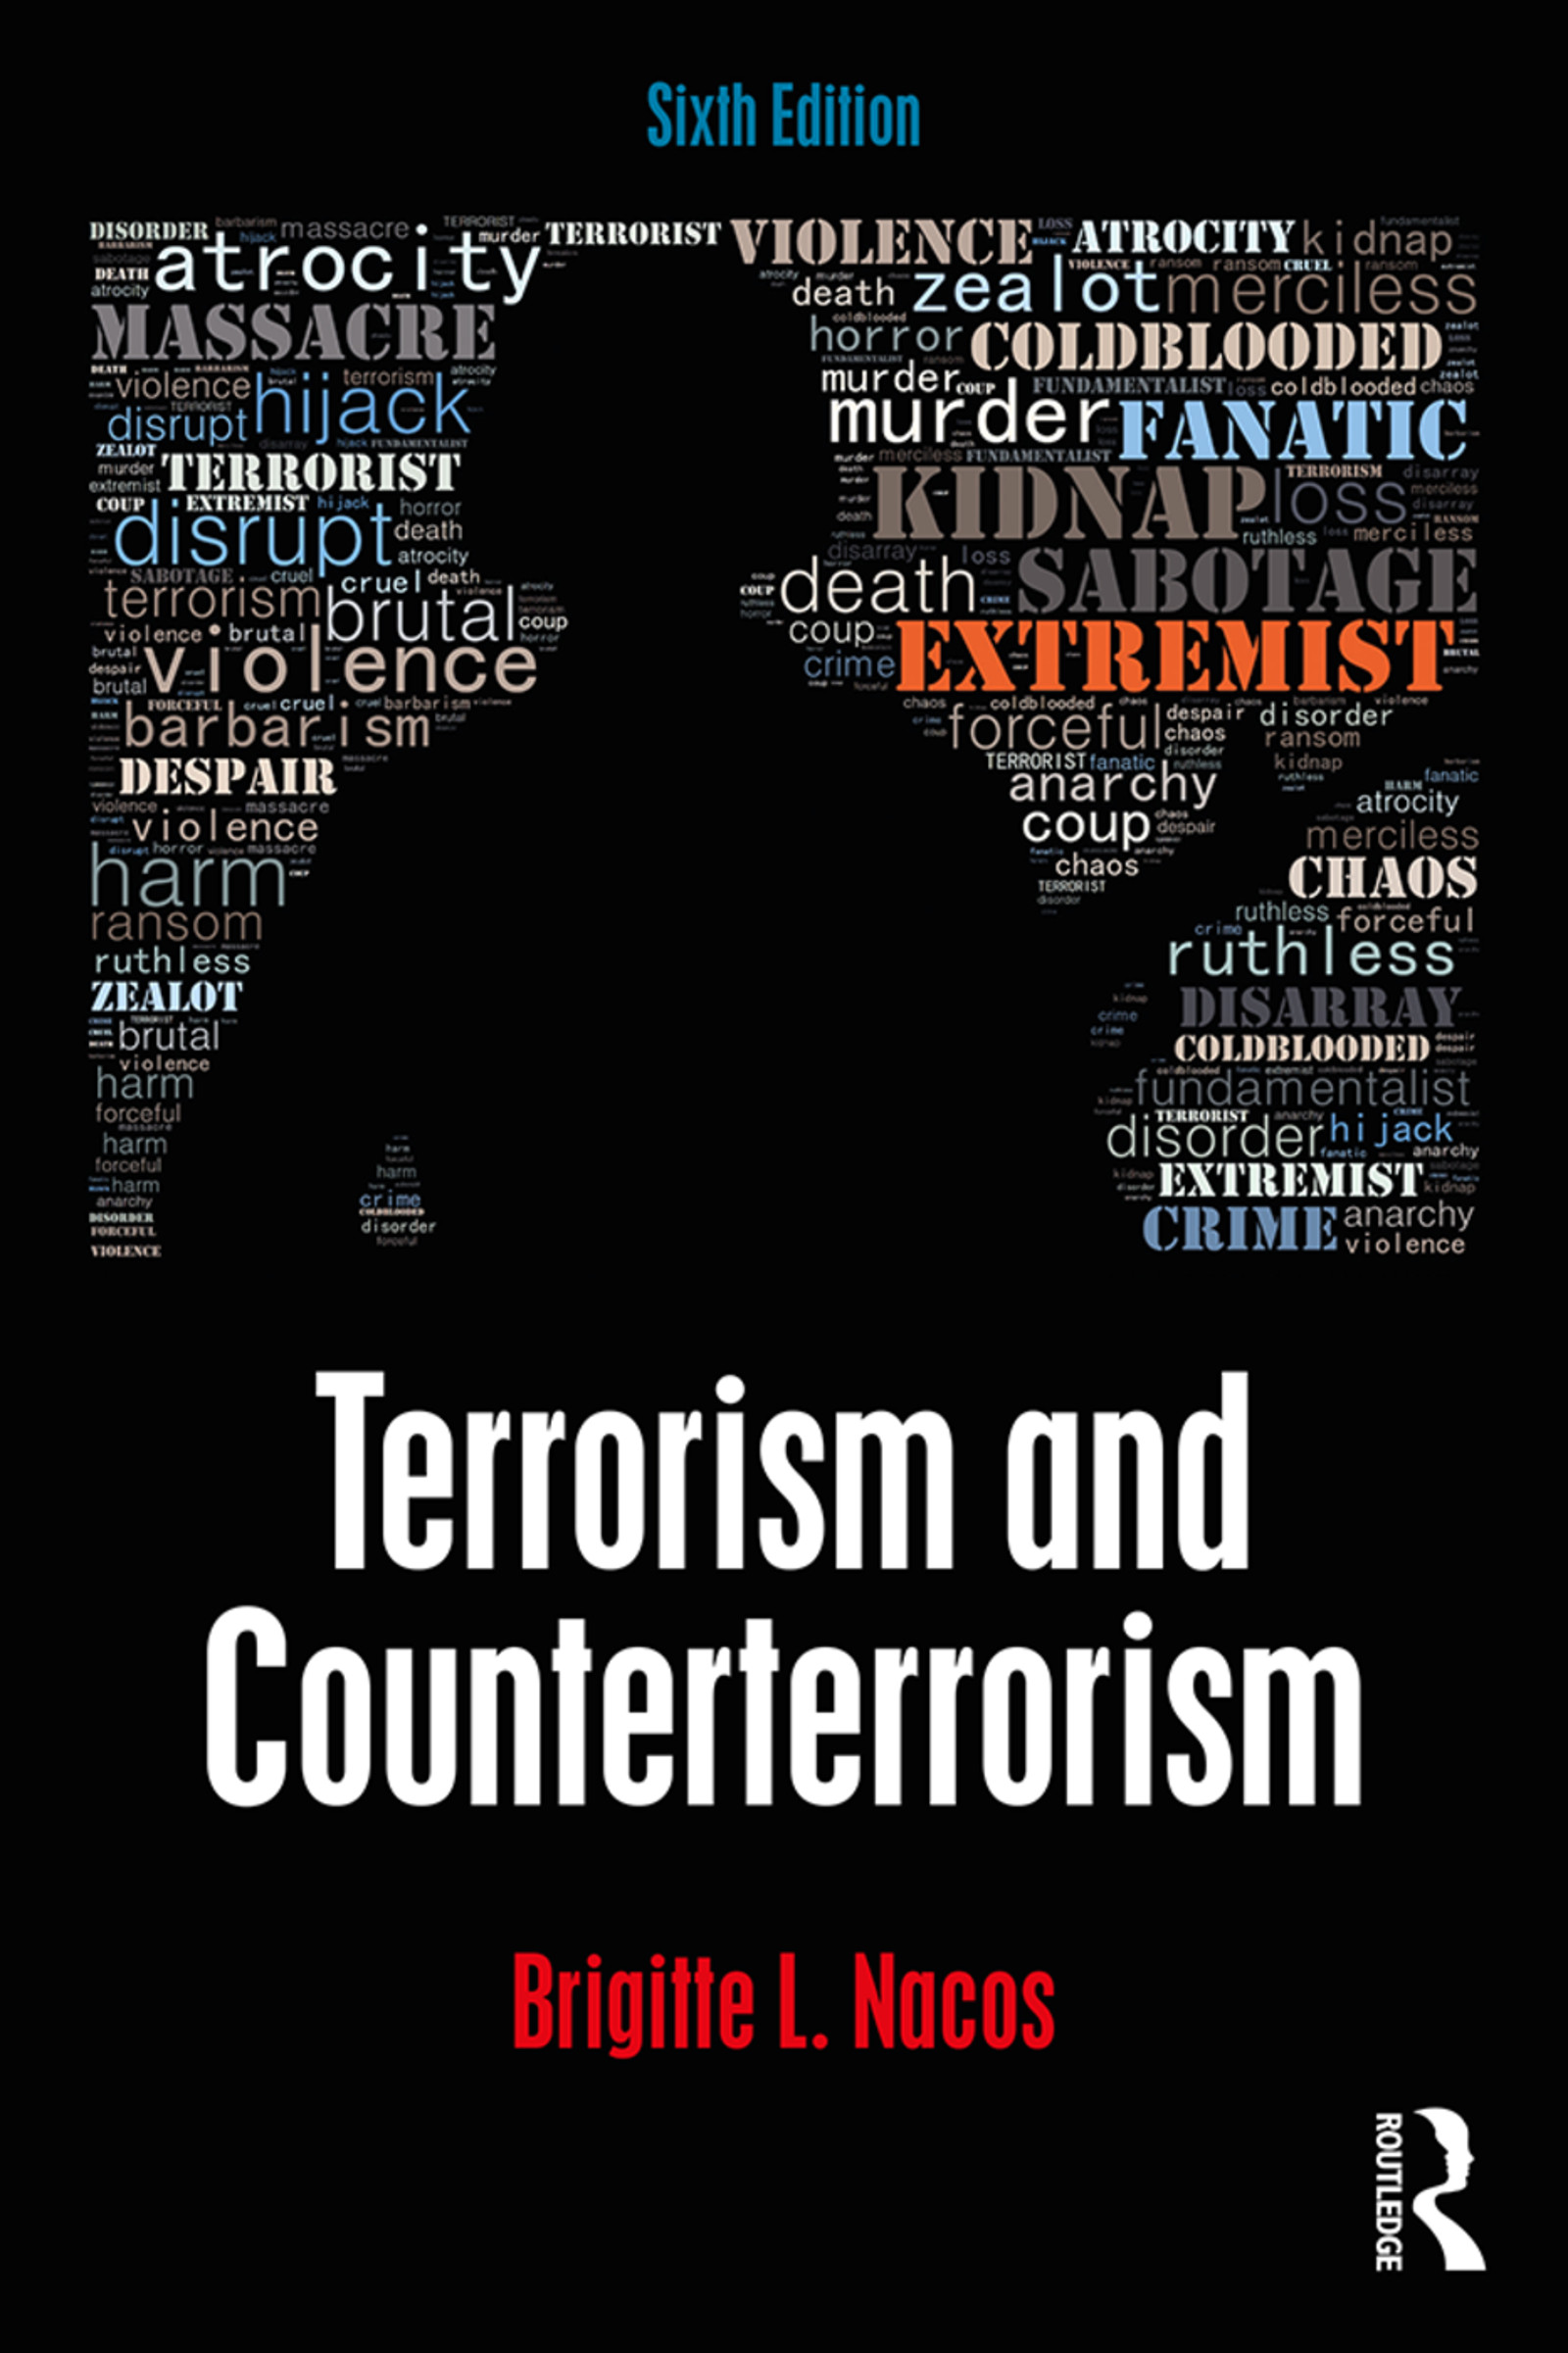 Terrorism and Counterterrorism book cover